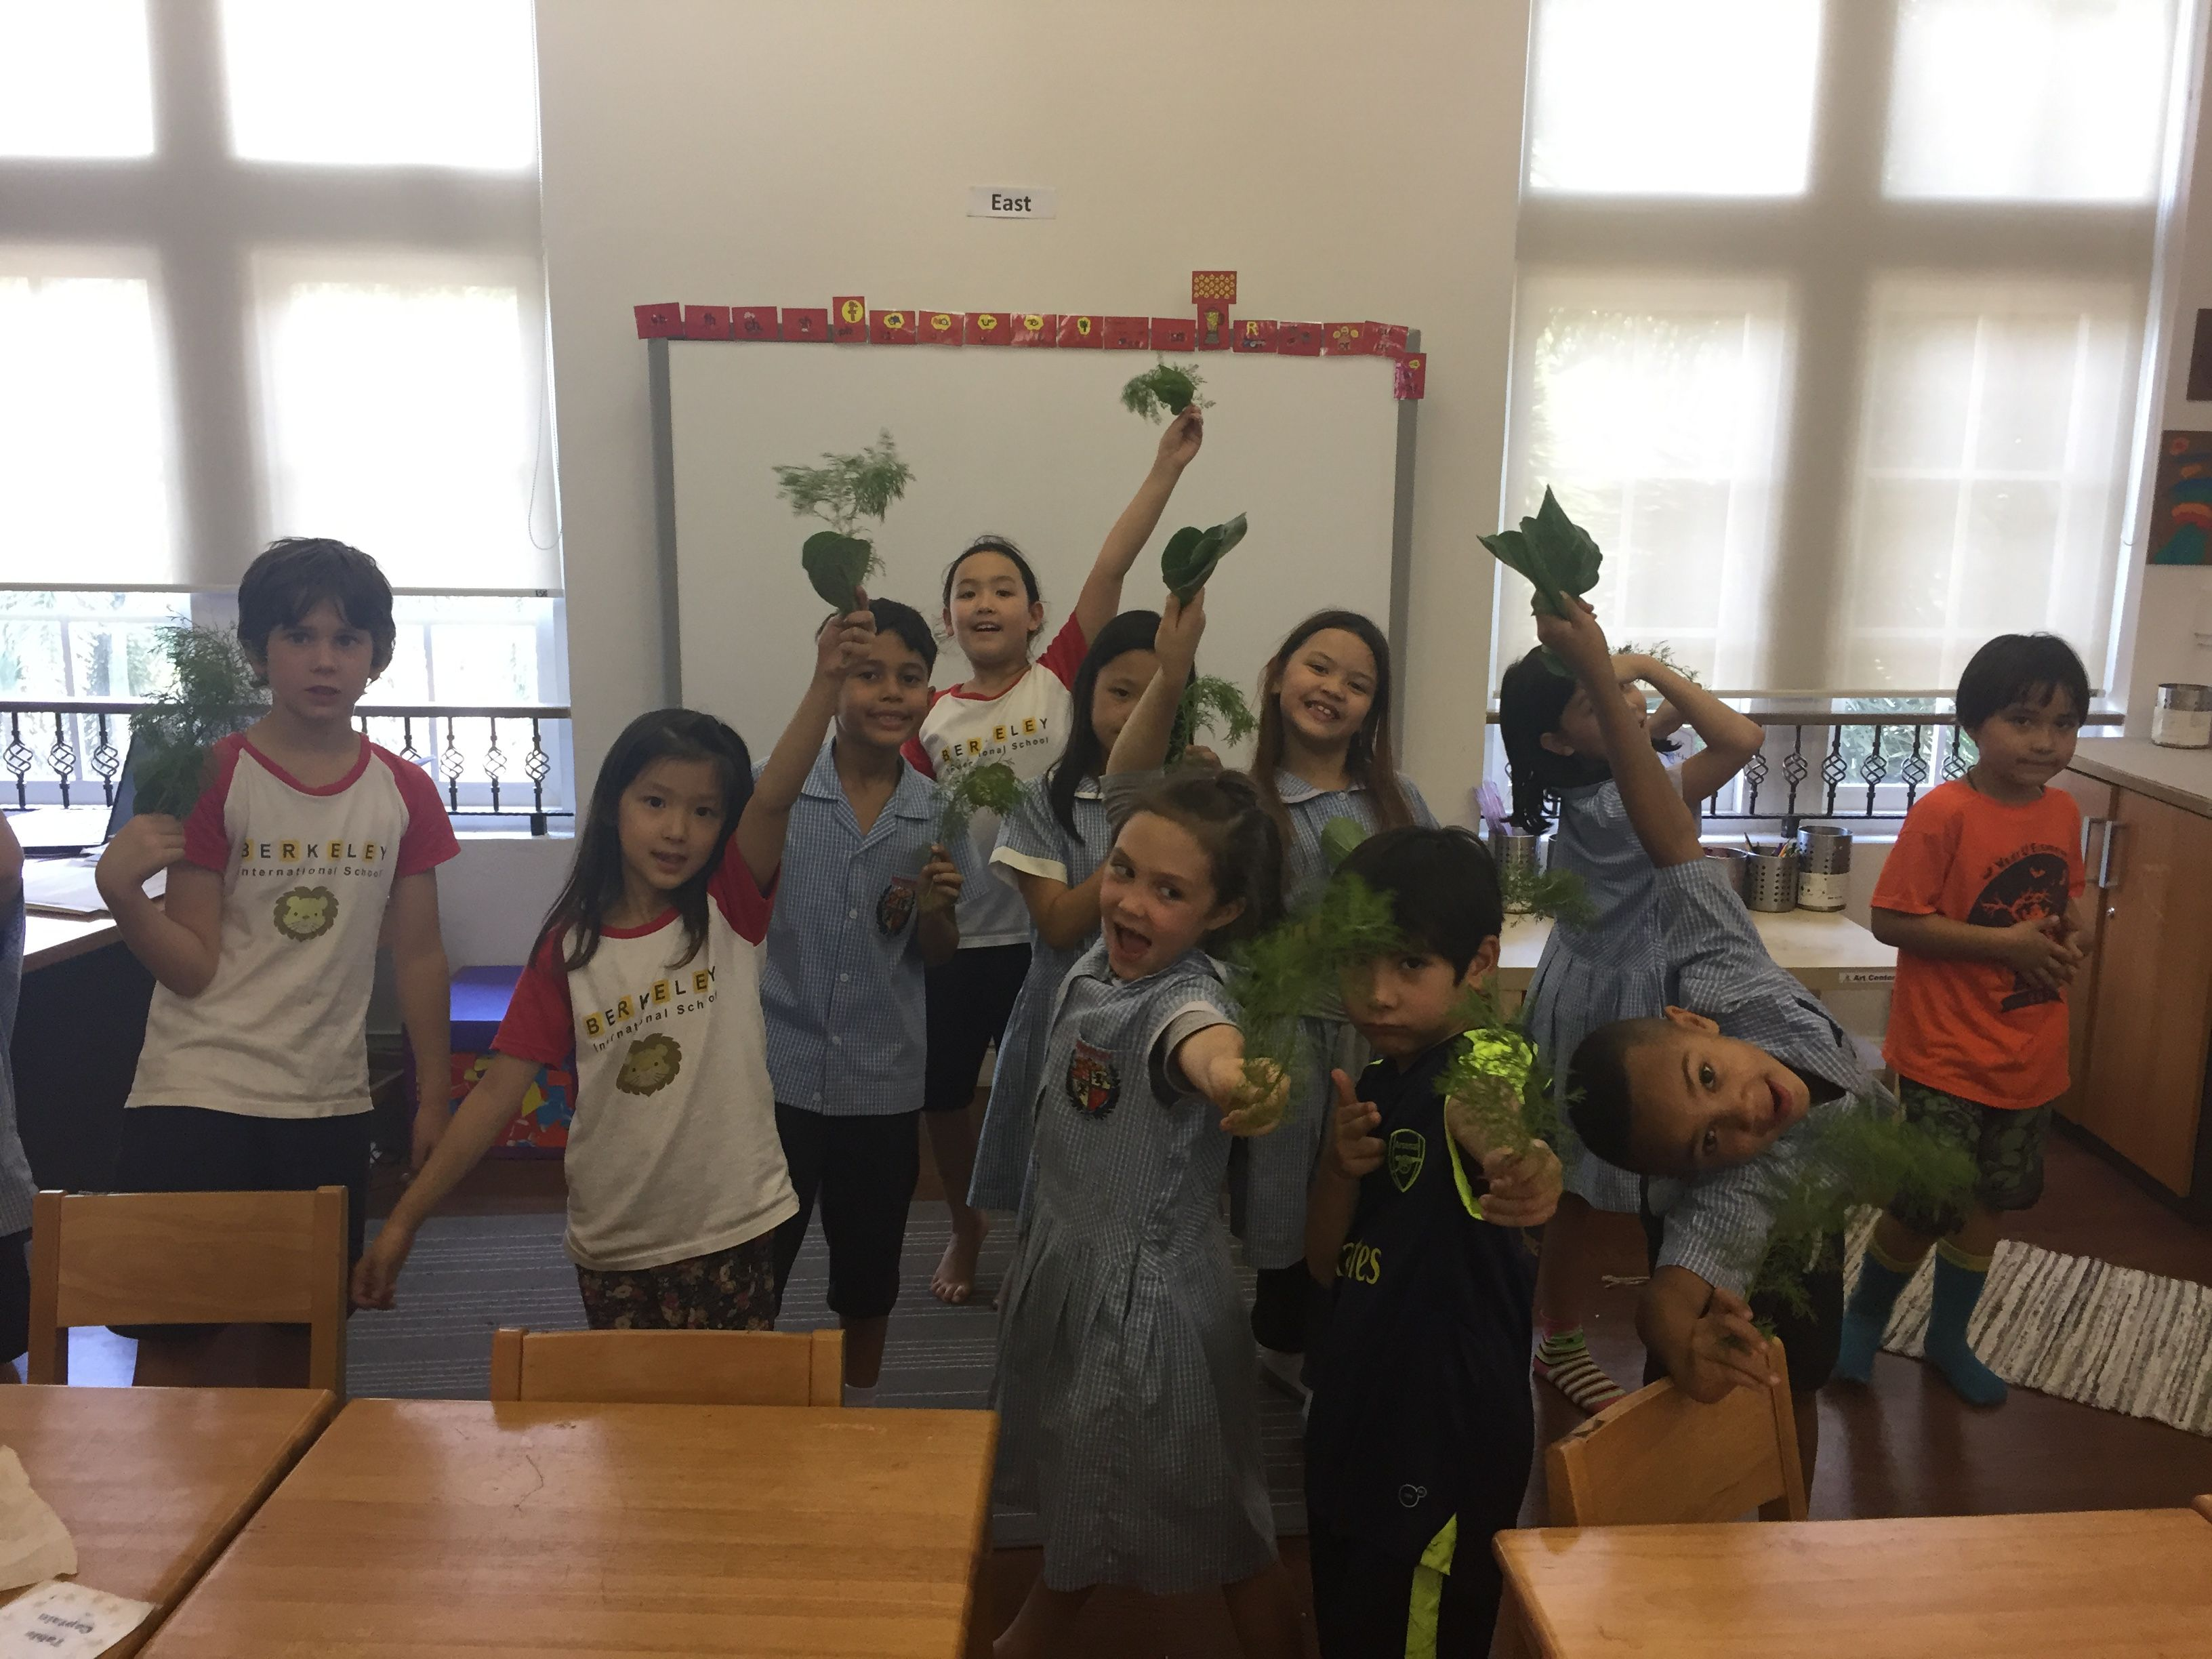 We enjoyed our first harvest from Berkeley's Garden! Each of the students took some of it home to enjoy and share with their families.